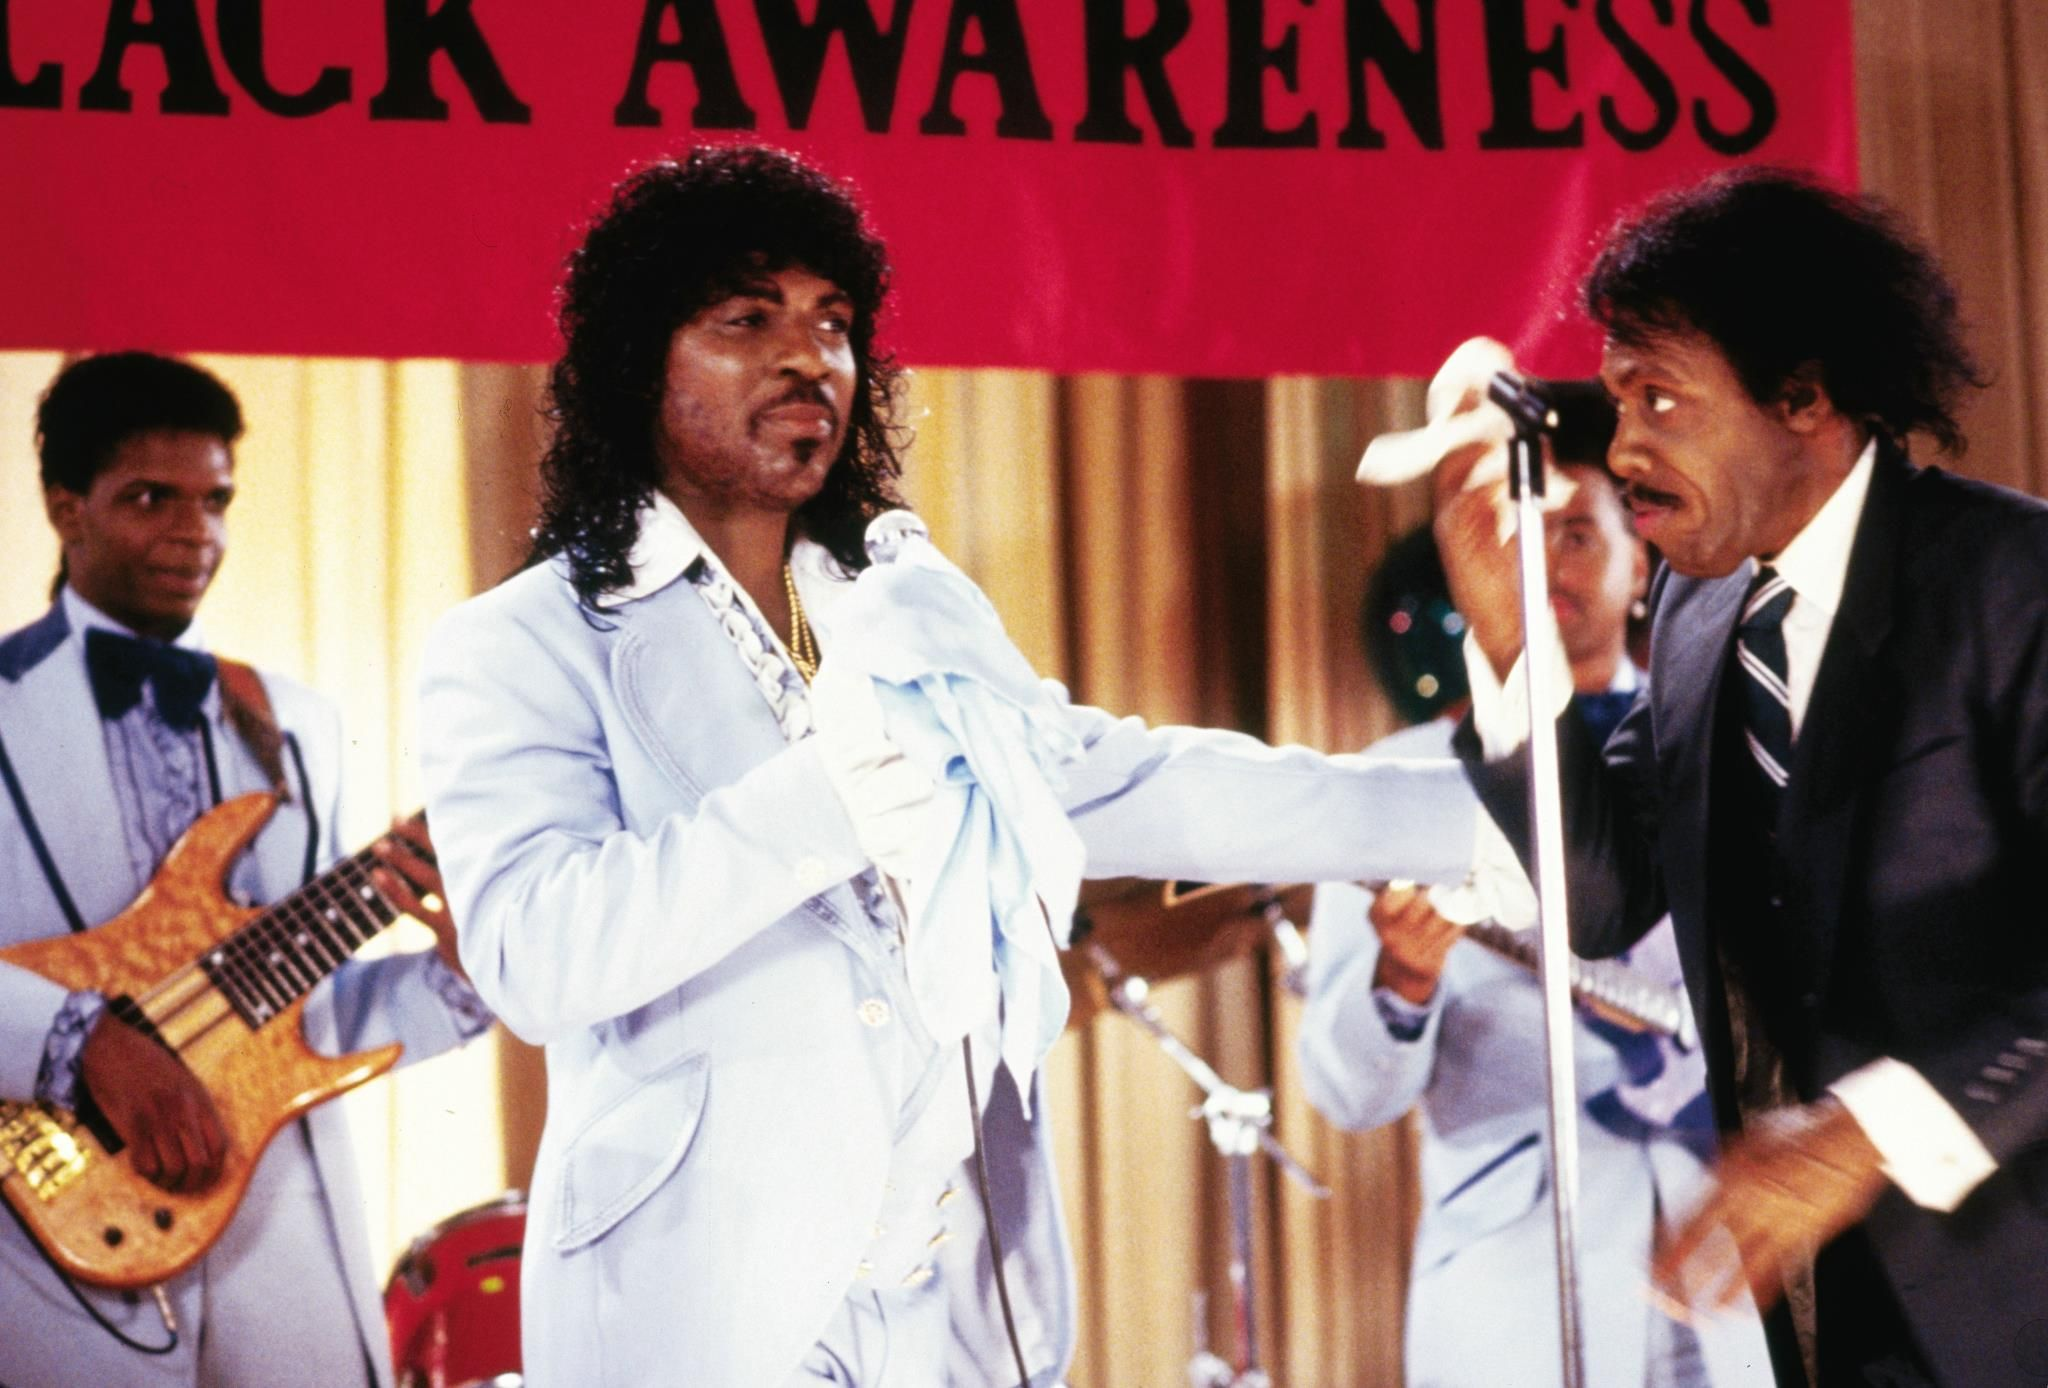 Randy Watson And Reverend Brown - Coming To America